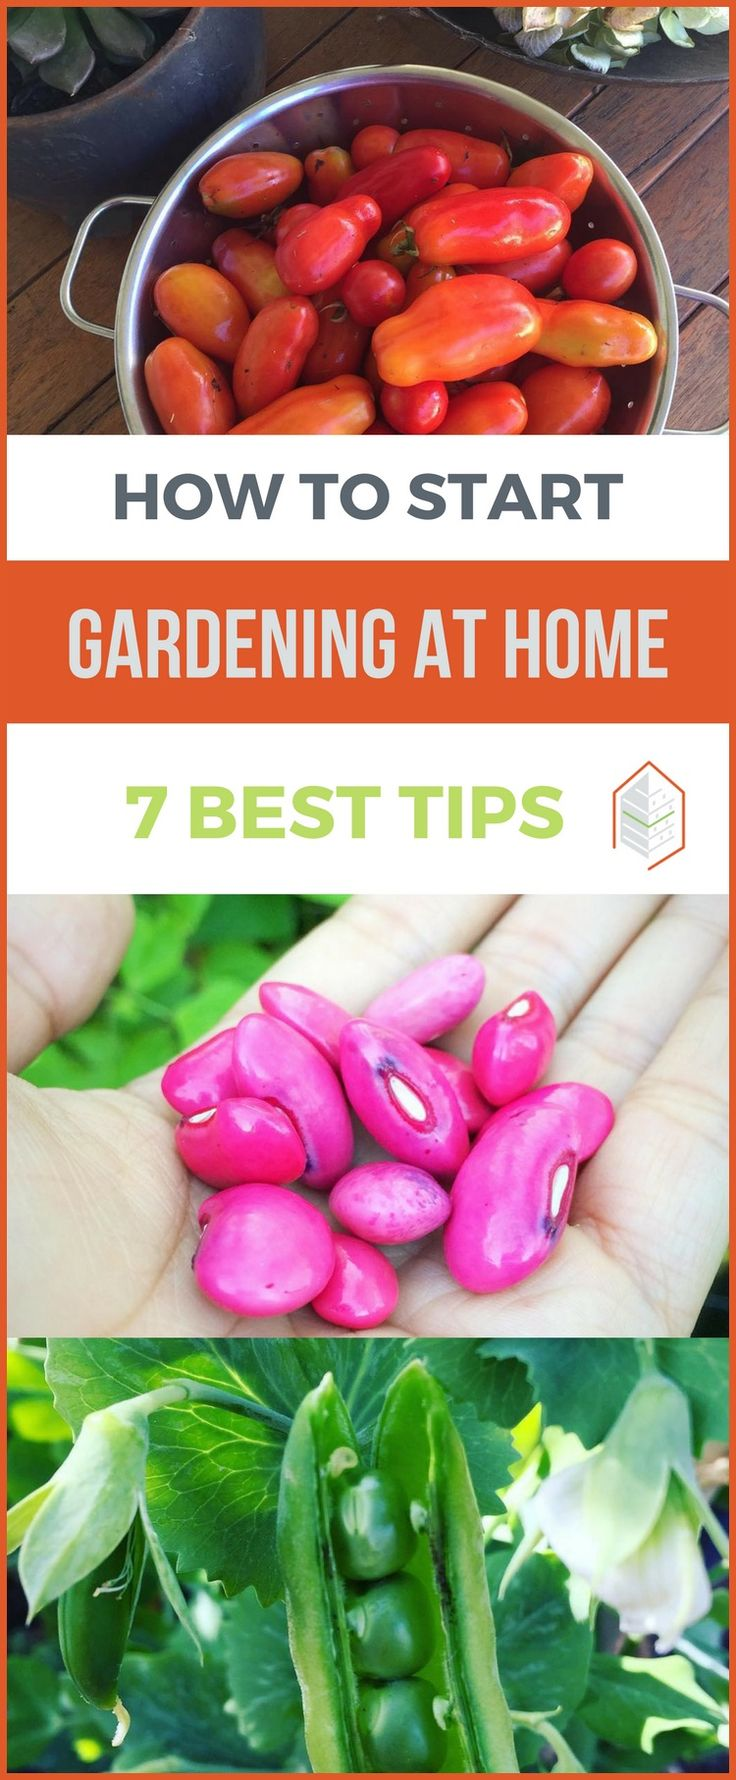 How To Start Gardening At Home: 7 Best Tips